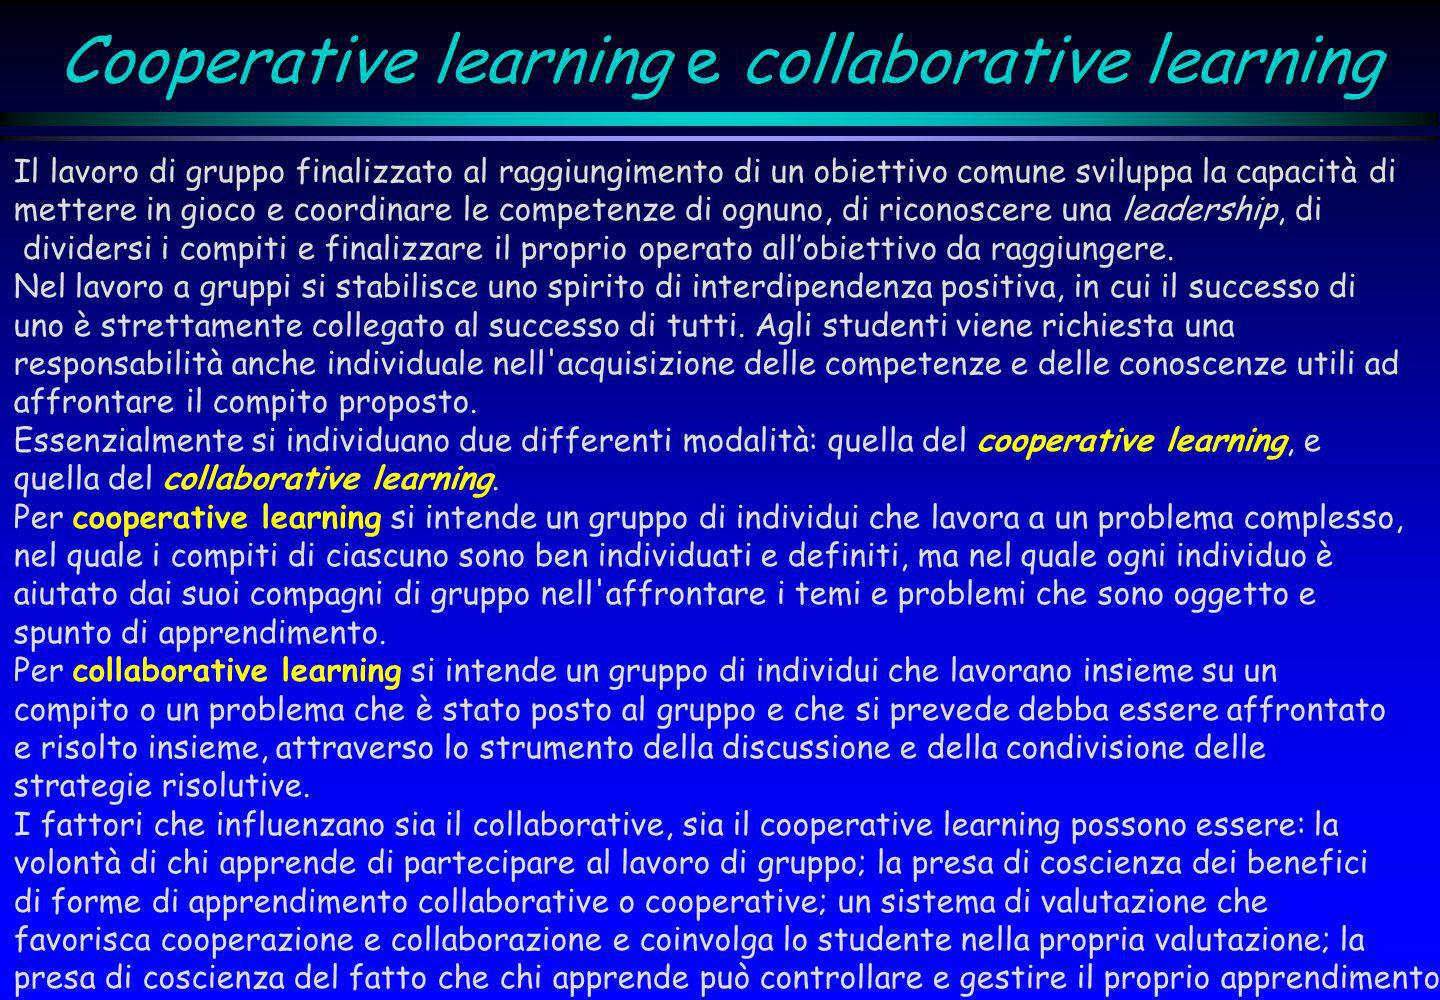 Cooperative learning e collaborative learning